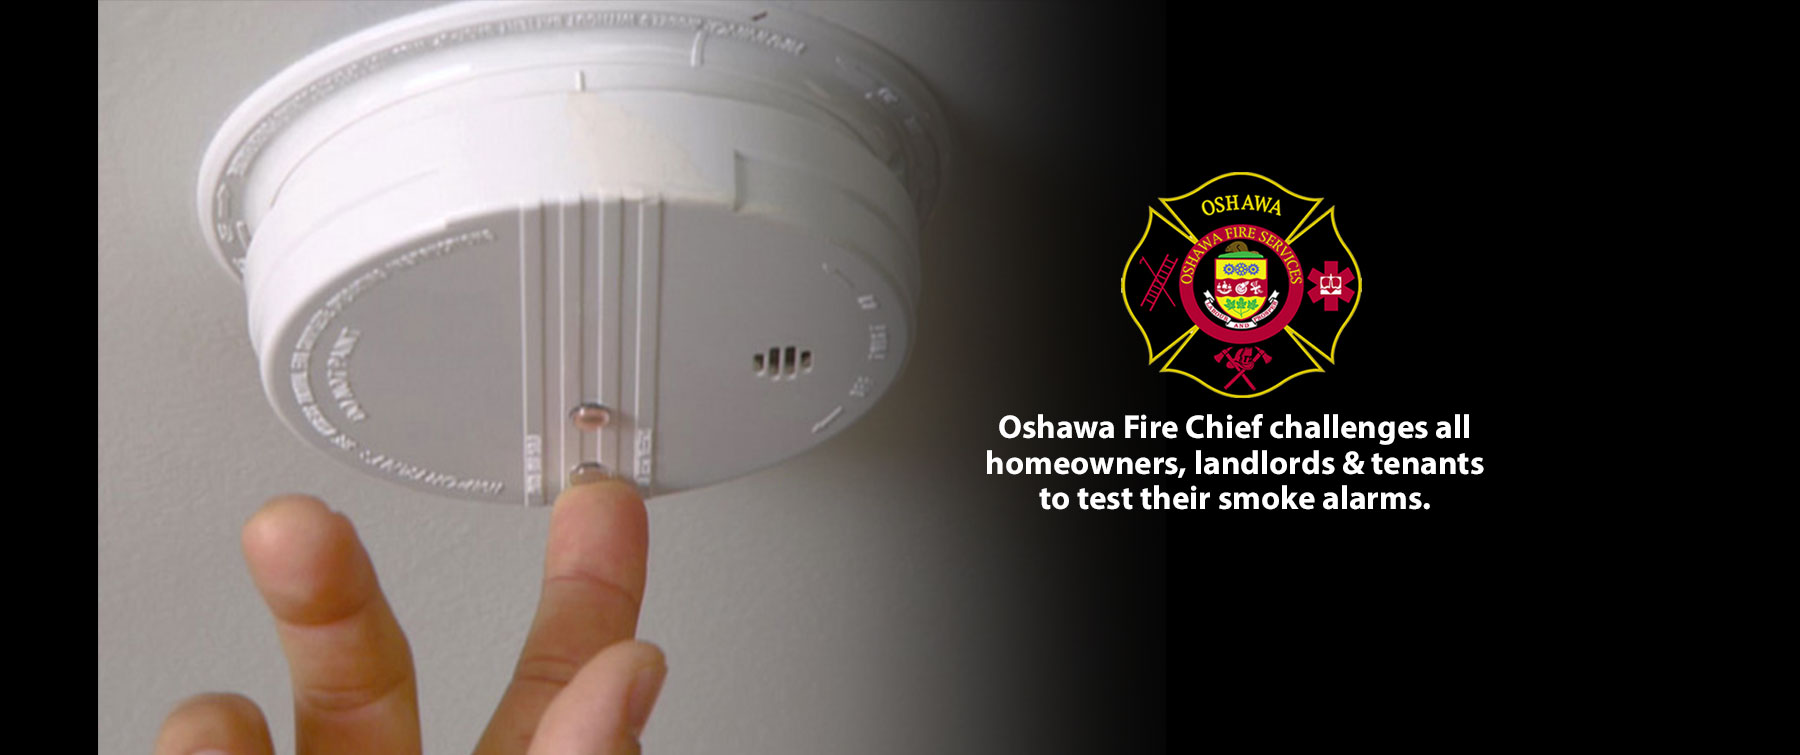 Make sure your home has working smoke alarms. Smoke alarms are required on every storey and outside of all sleeping areas. Test smoke alarms monthly, change the batteries once a year, replace smoke alarms after 10 years, and develop and practice a home fire escape plan with everyone in your household. image